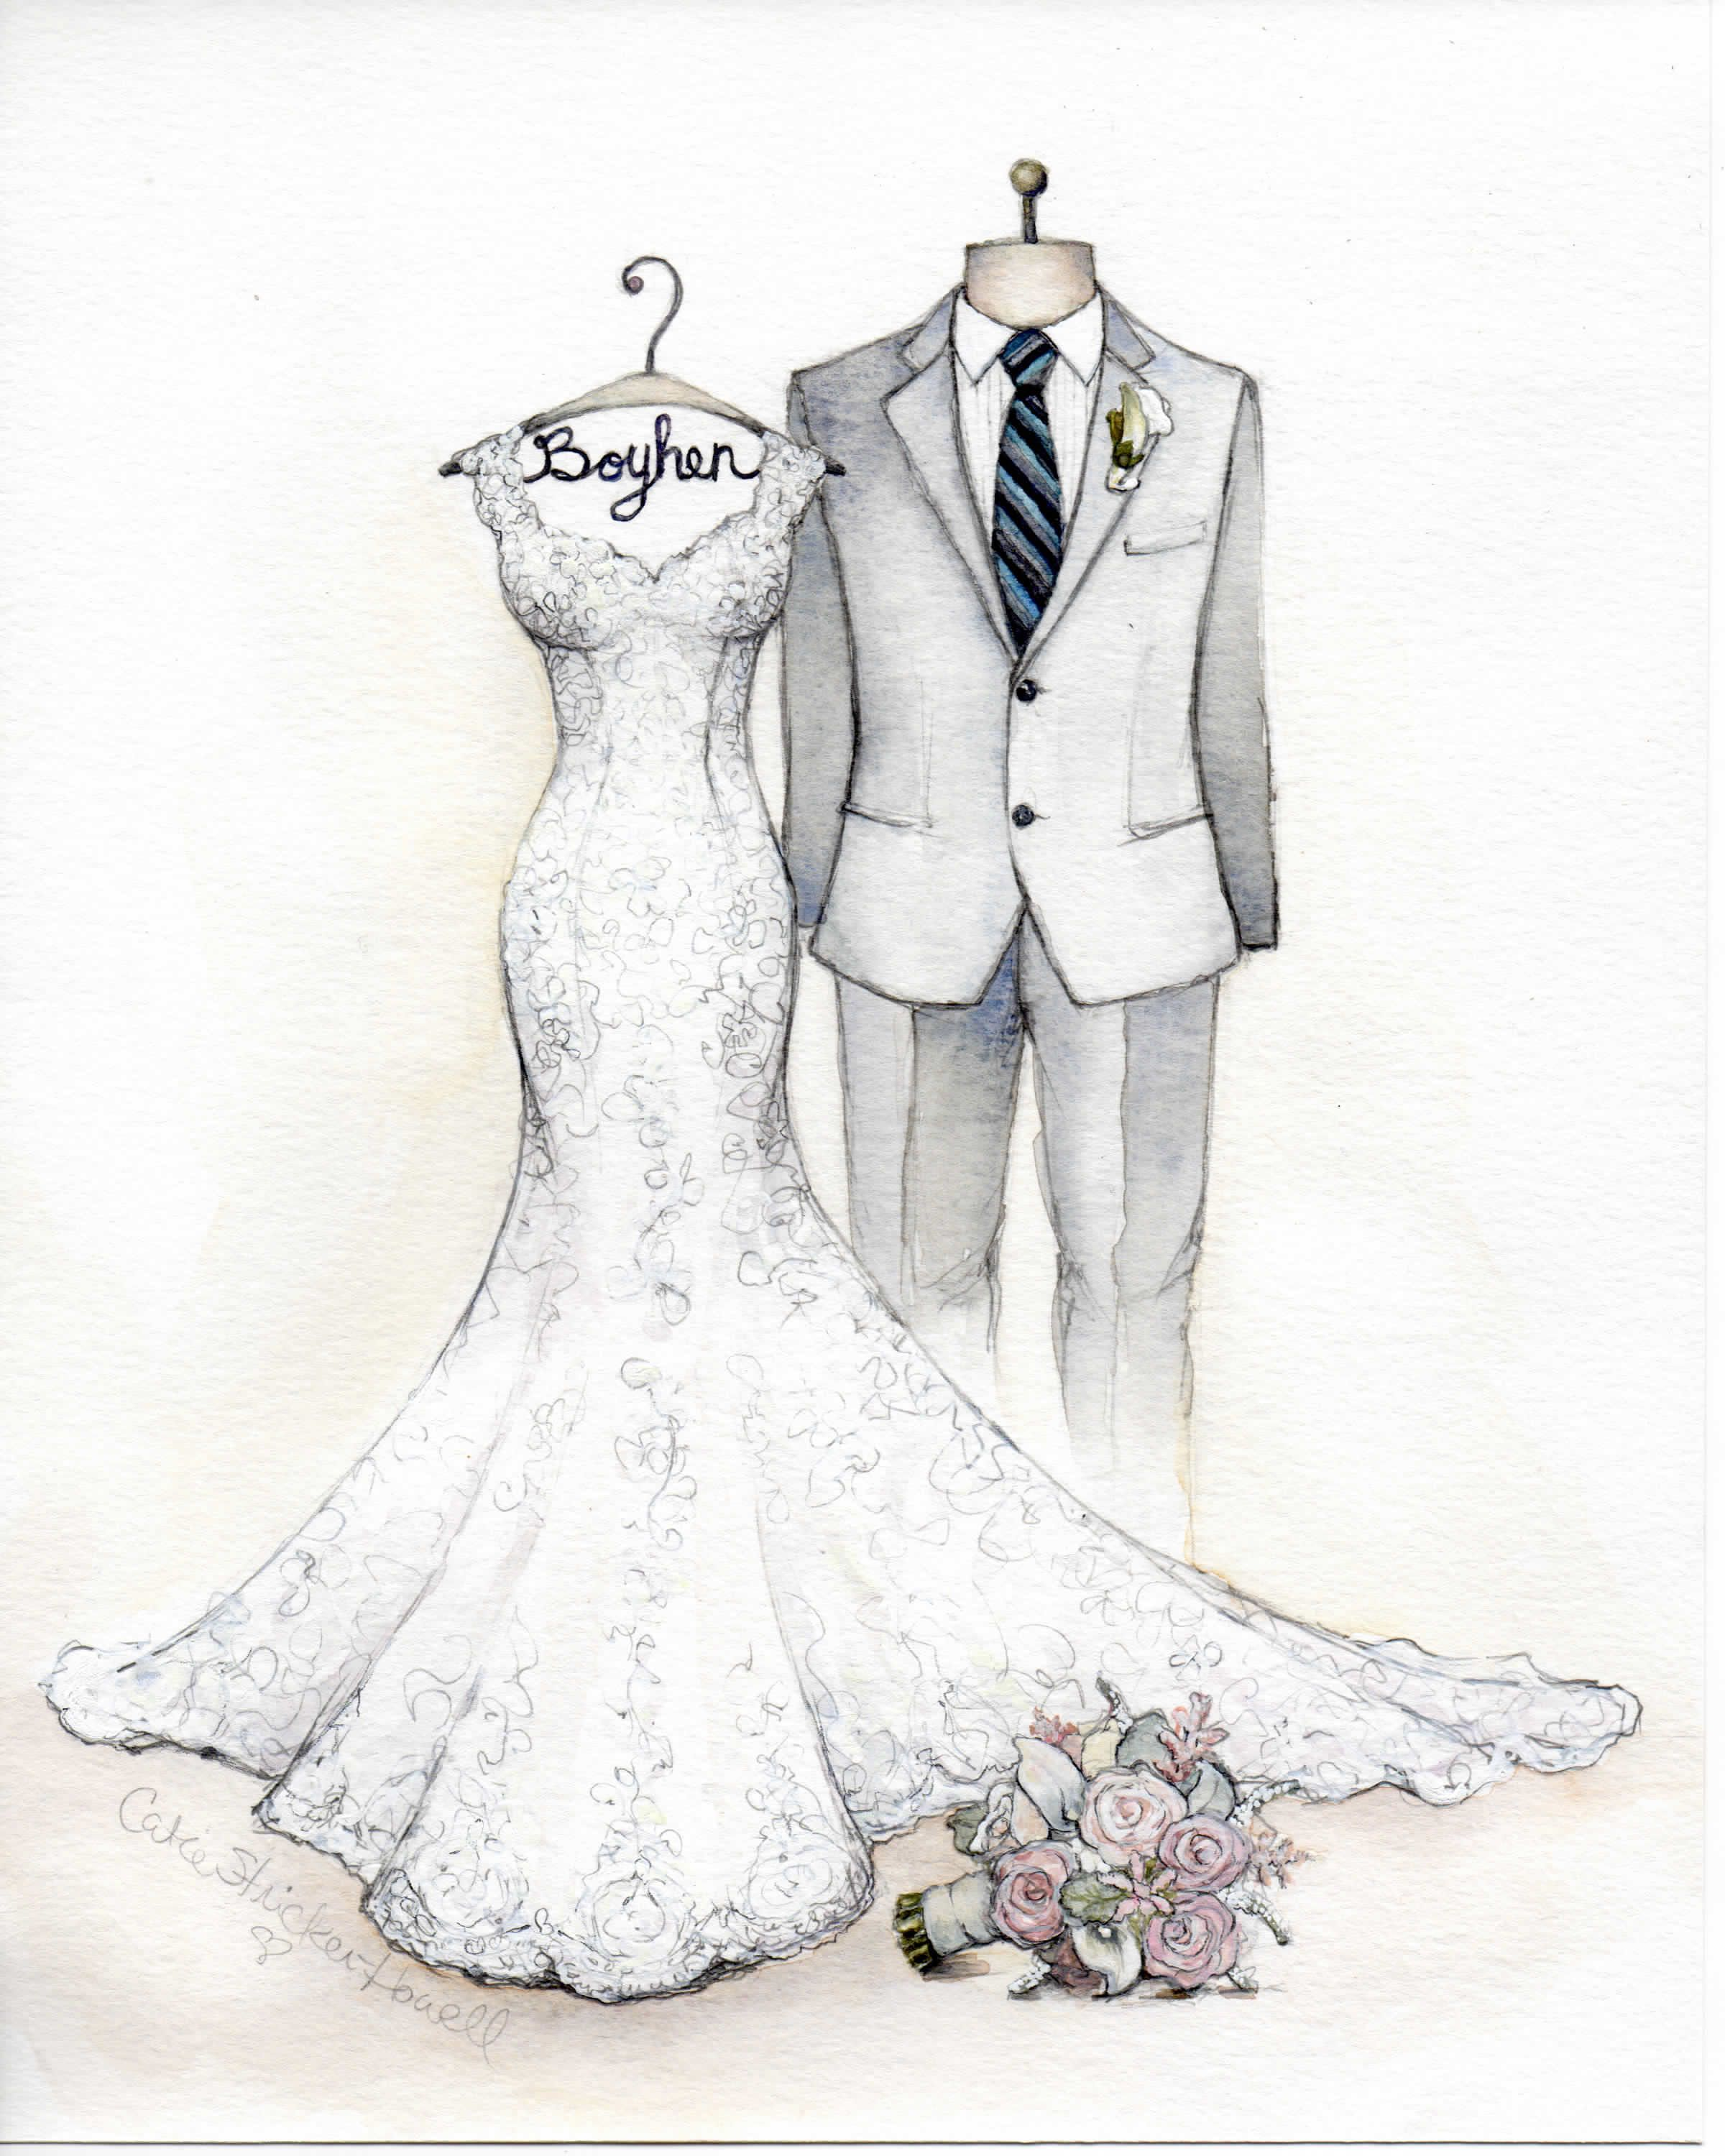 Here S A New One Wedding Dress Sketch Bride Groom With Bouquet